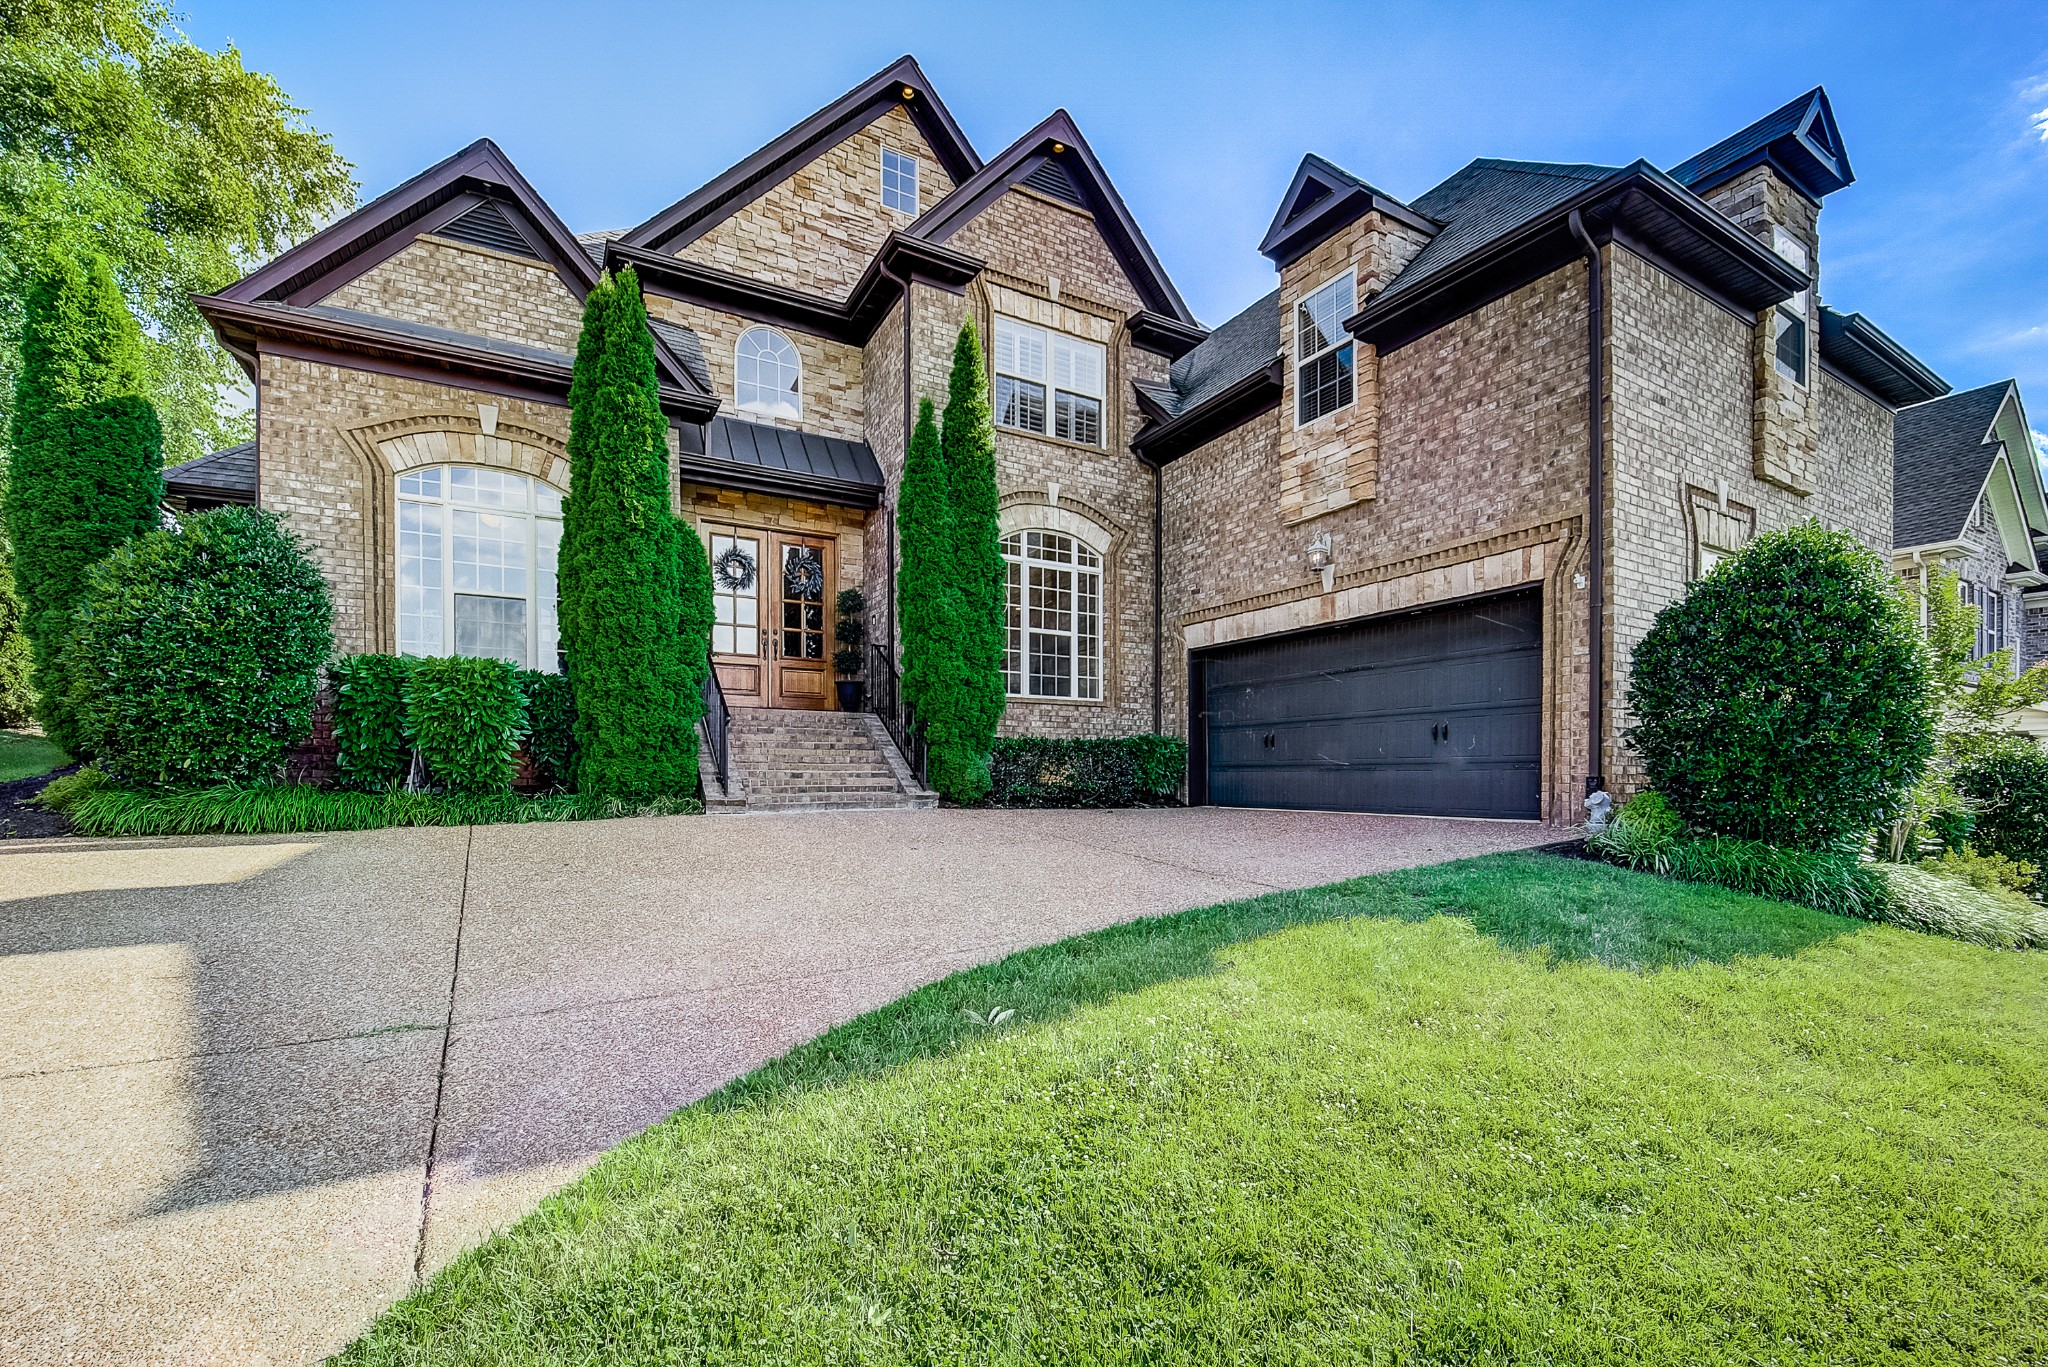 Meticulously maintained custom home with high-end finishes & architectural detail throughout. Prime lot looking out over an expansive & open view. 2 beds on main, huge bonus & separate hobby room. Updated interiors & attention to detail are unmatched in this beautiful Brentwood home.